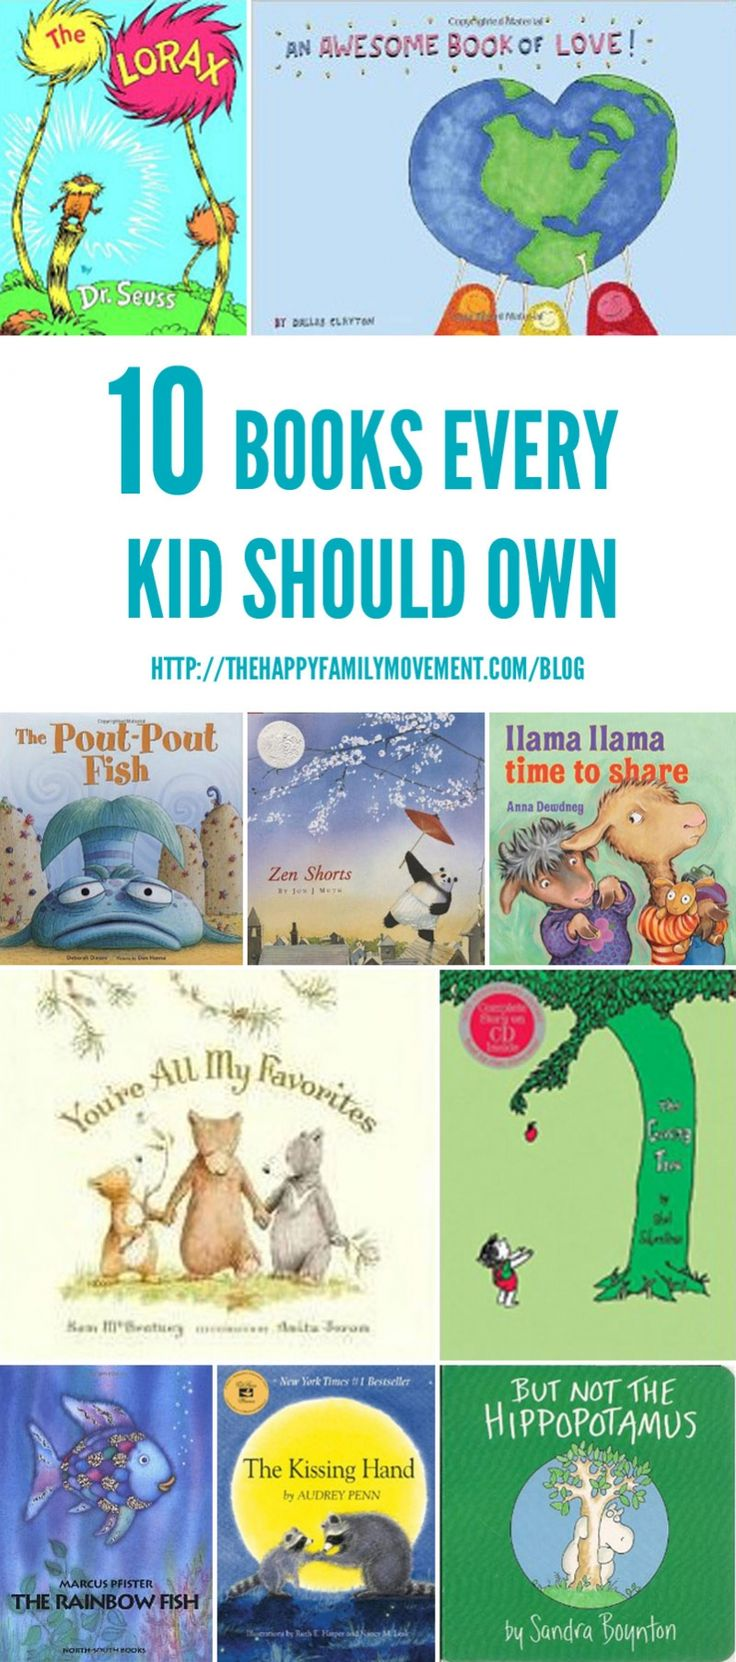 Ten Books Every Kid Should Own. We have four! Pout Pout Fish is next on the list.